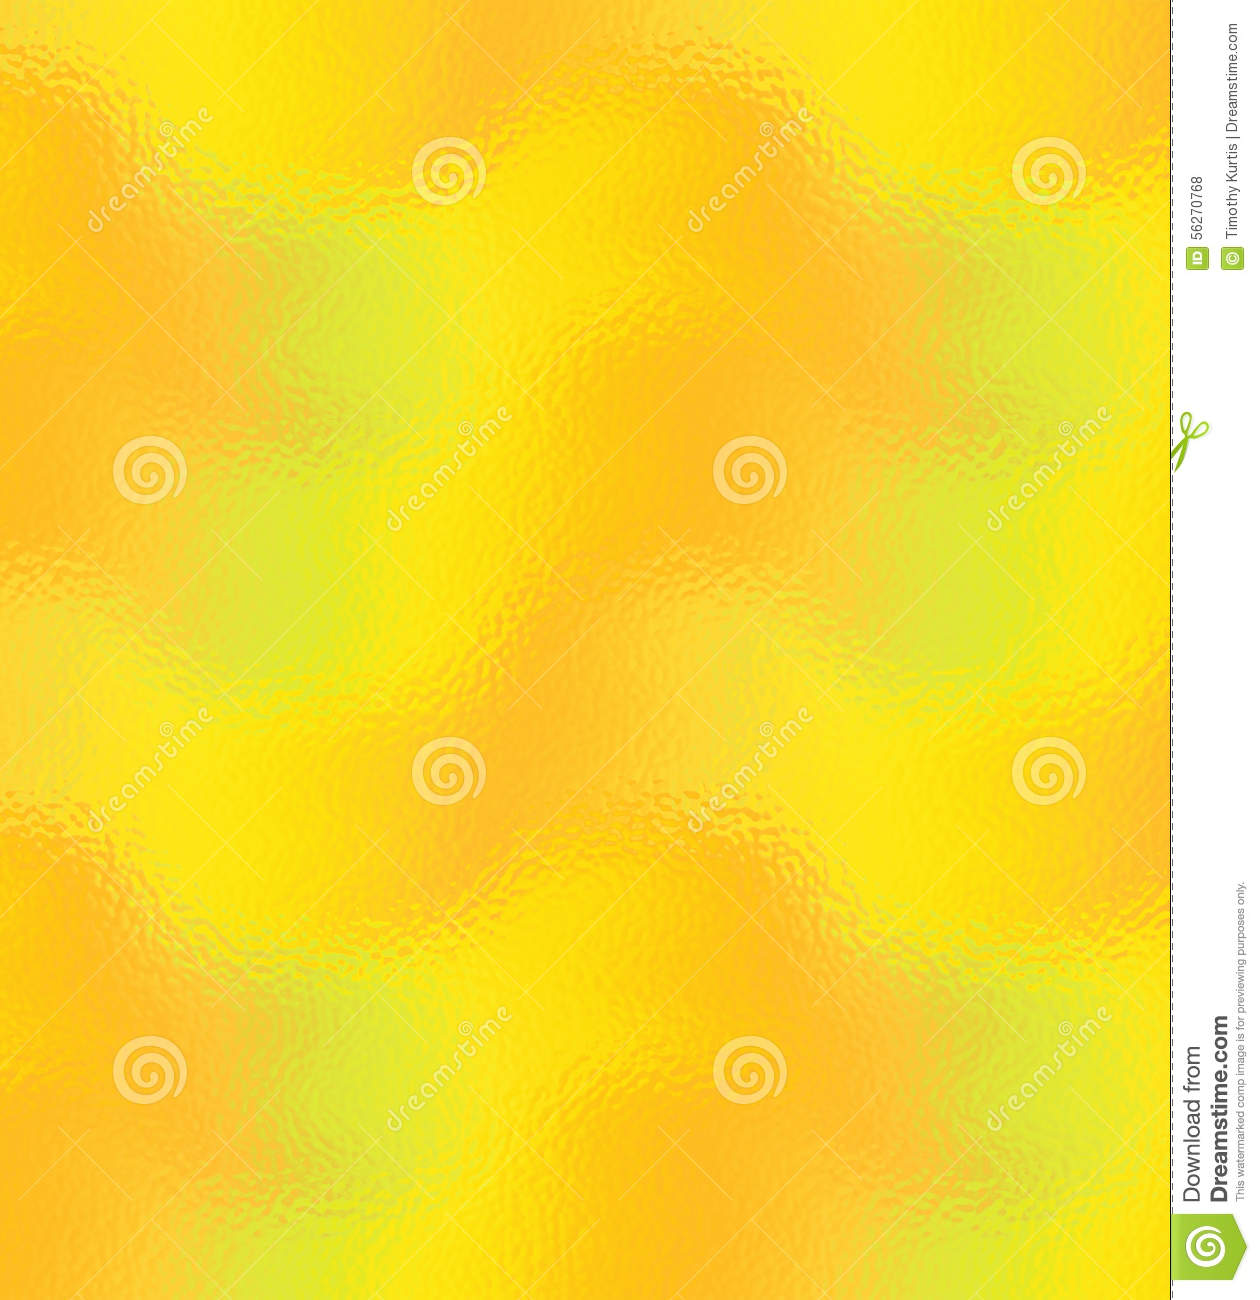 Sutes That Are Yellow: Gold And Yellow Frosted Glass Texture And Background